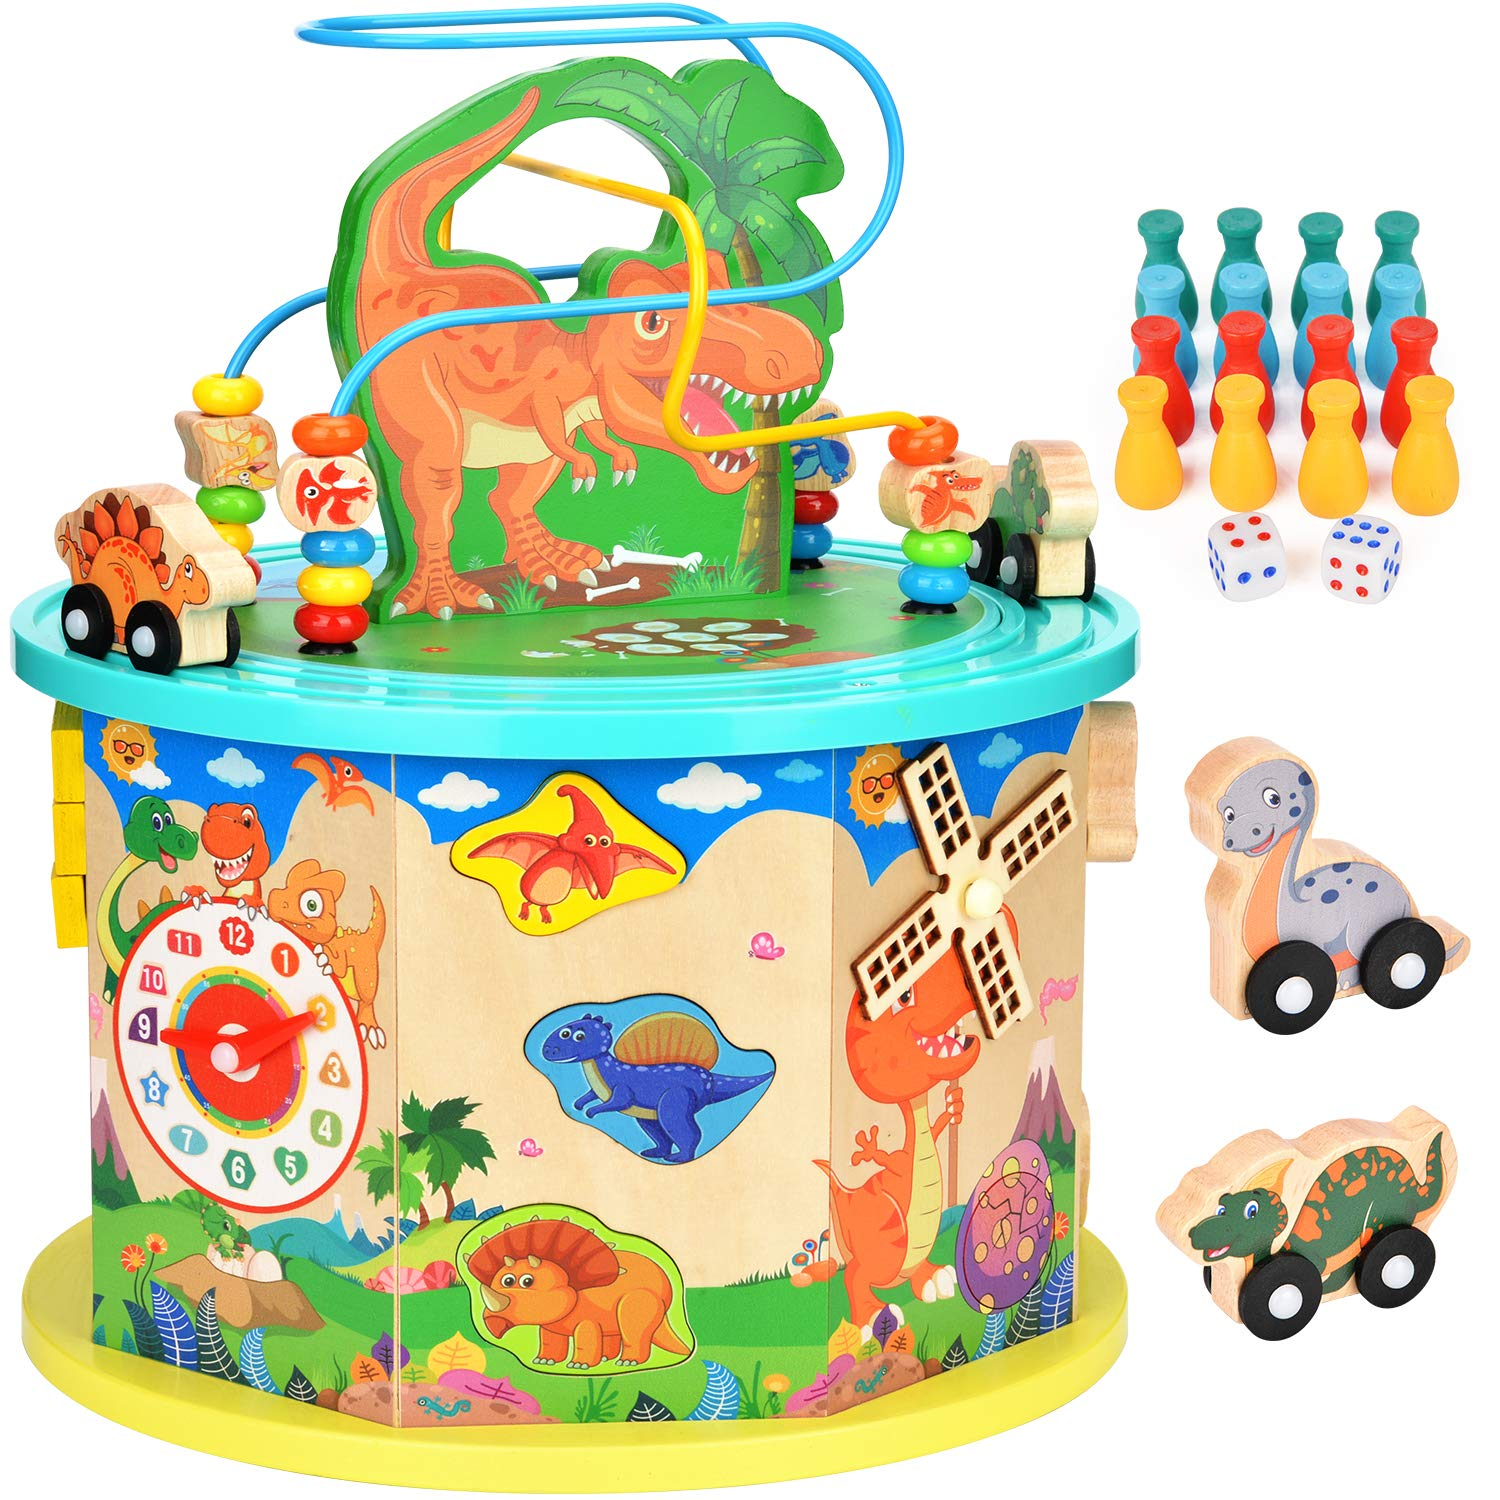 Amagoing Dinosaur Activity Cube, Baby Educational Toys Wooden Activity Center Bead Maze with Shape Sorter for Kids